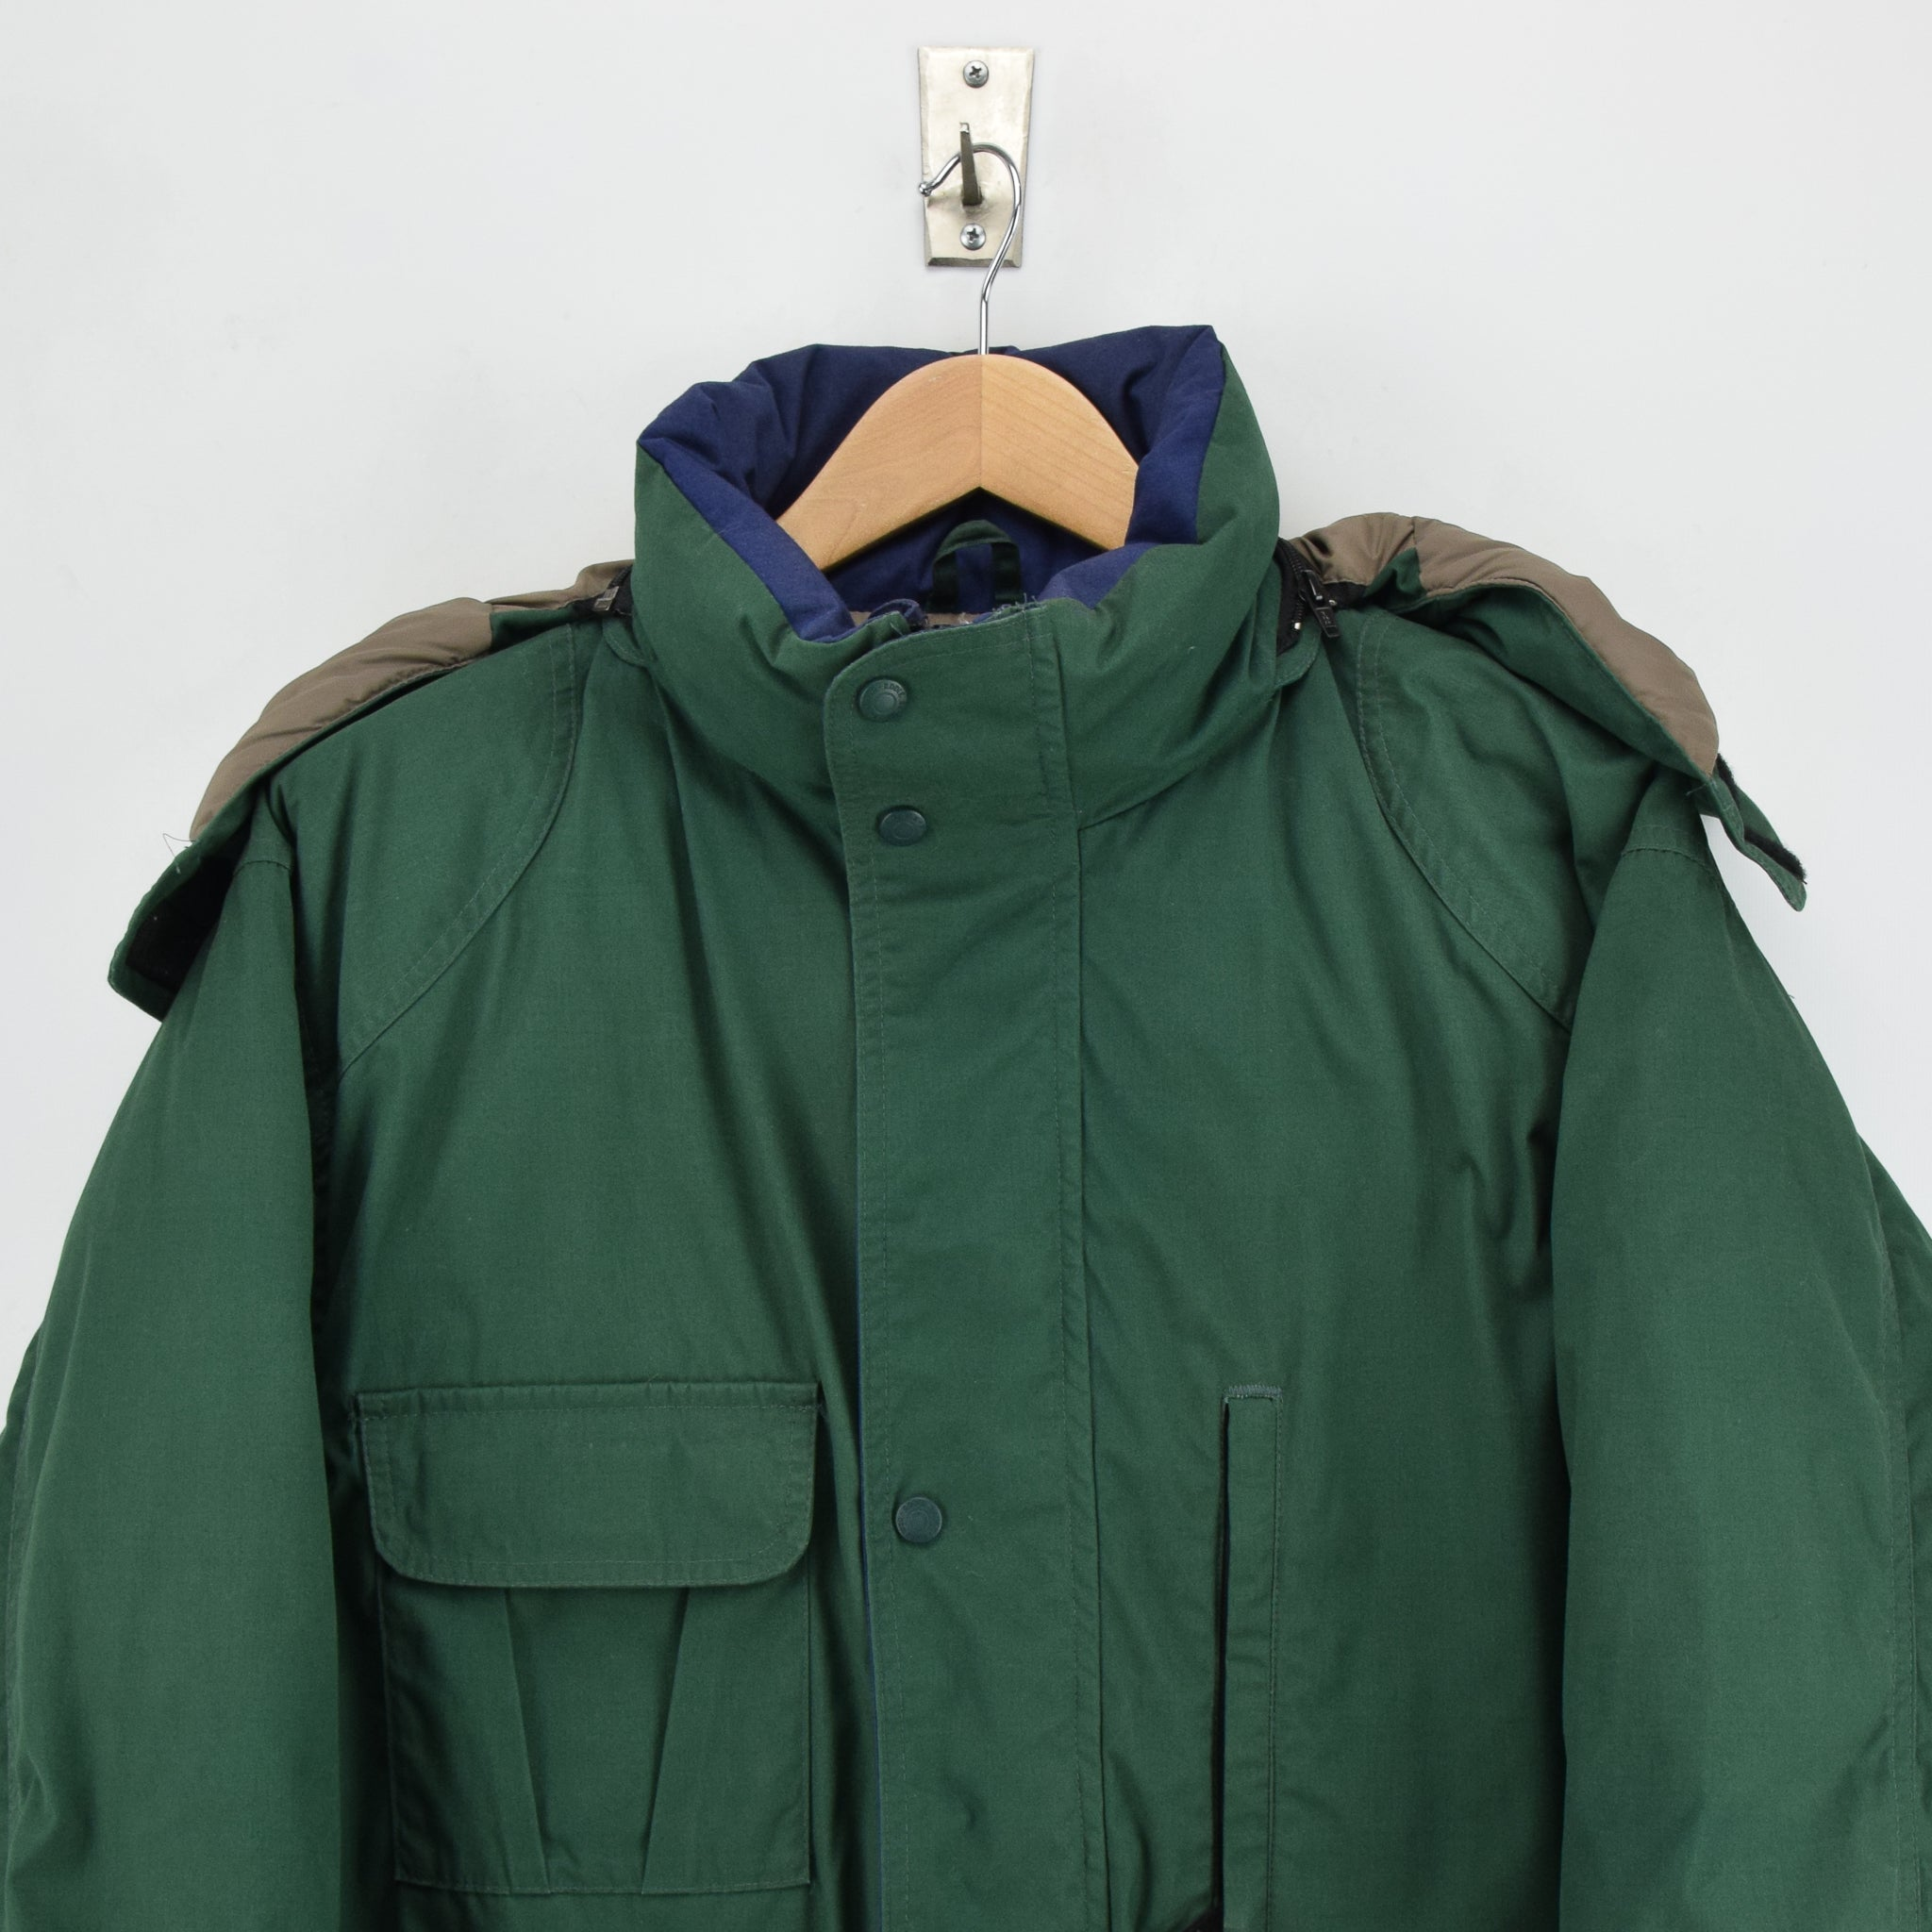 Vintage Eddie Bauer Ridgeline Goose Down Coat Mountain Parka Jacket USA Made L chest